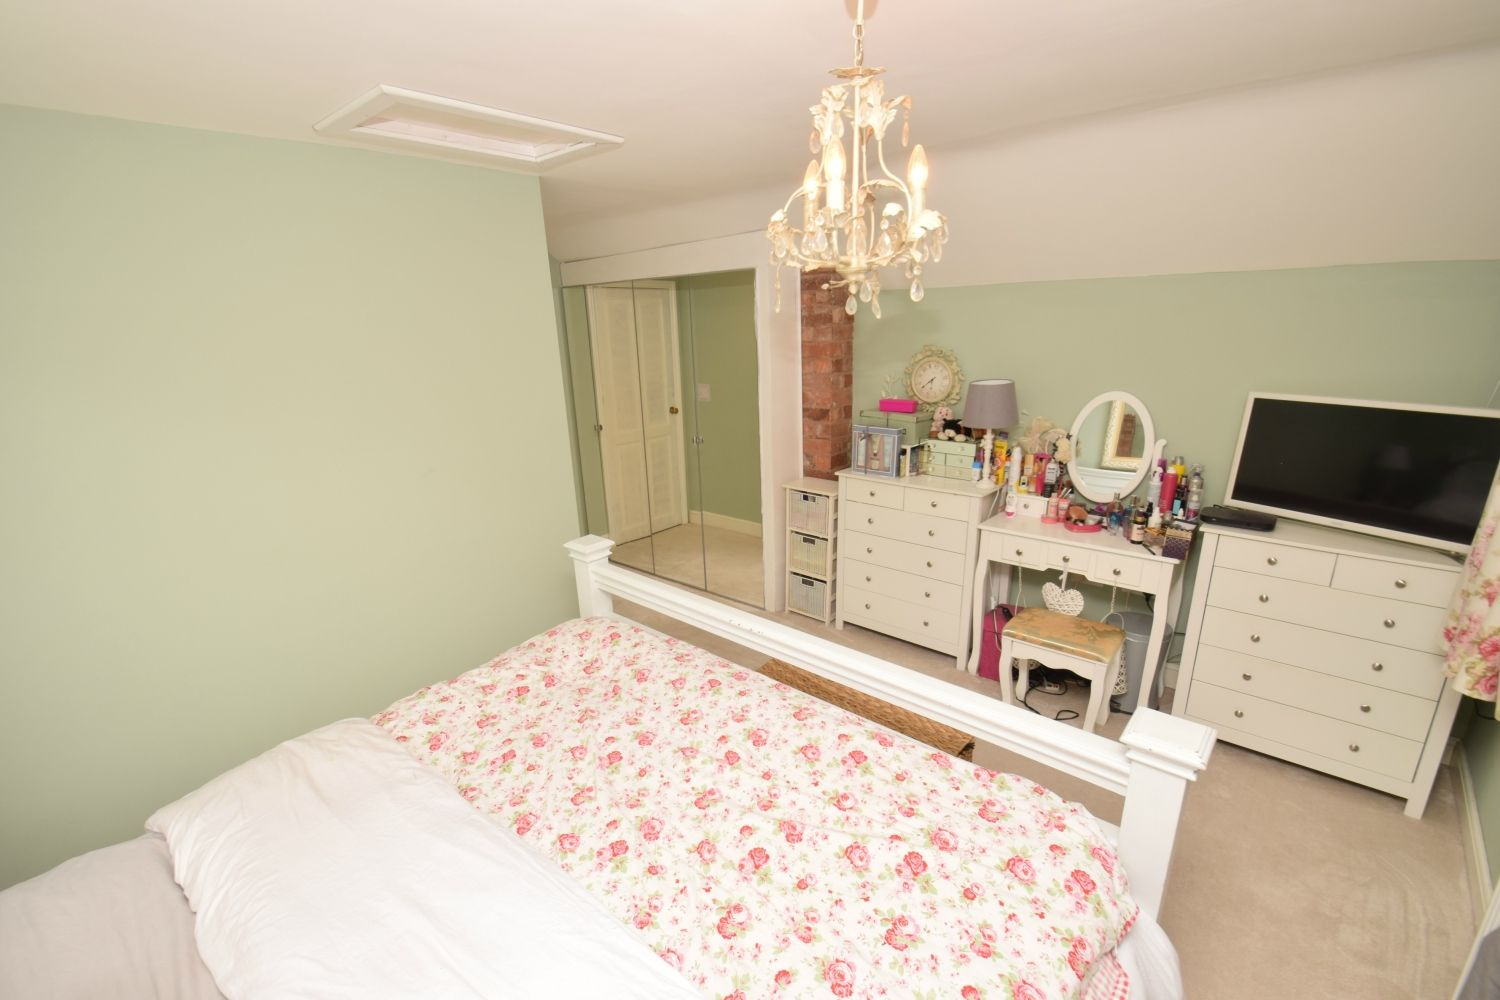 4 bed semi-detached for sale in Upland Grove, Bromsgrove, B61  - Property Image 18